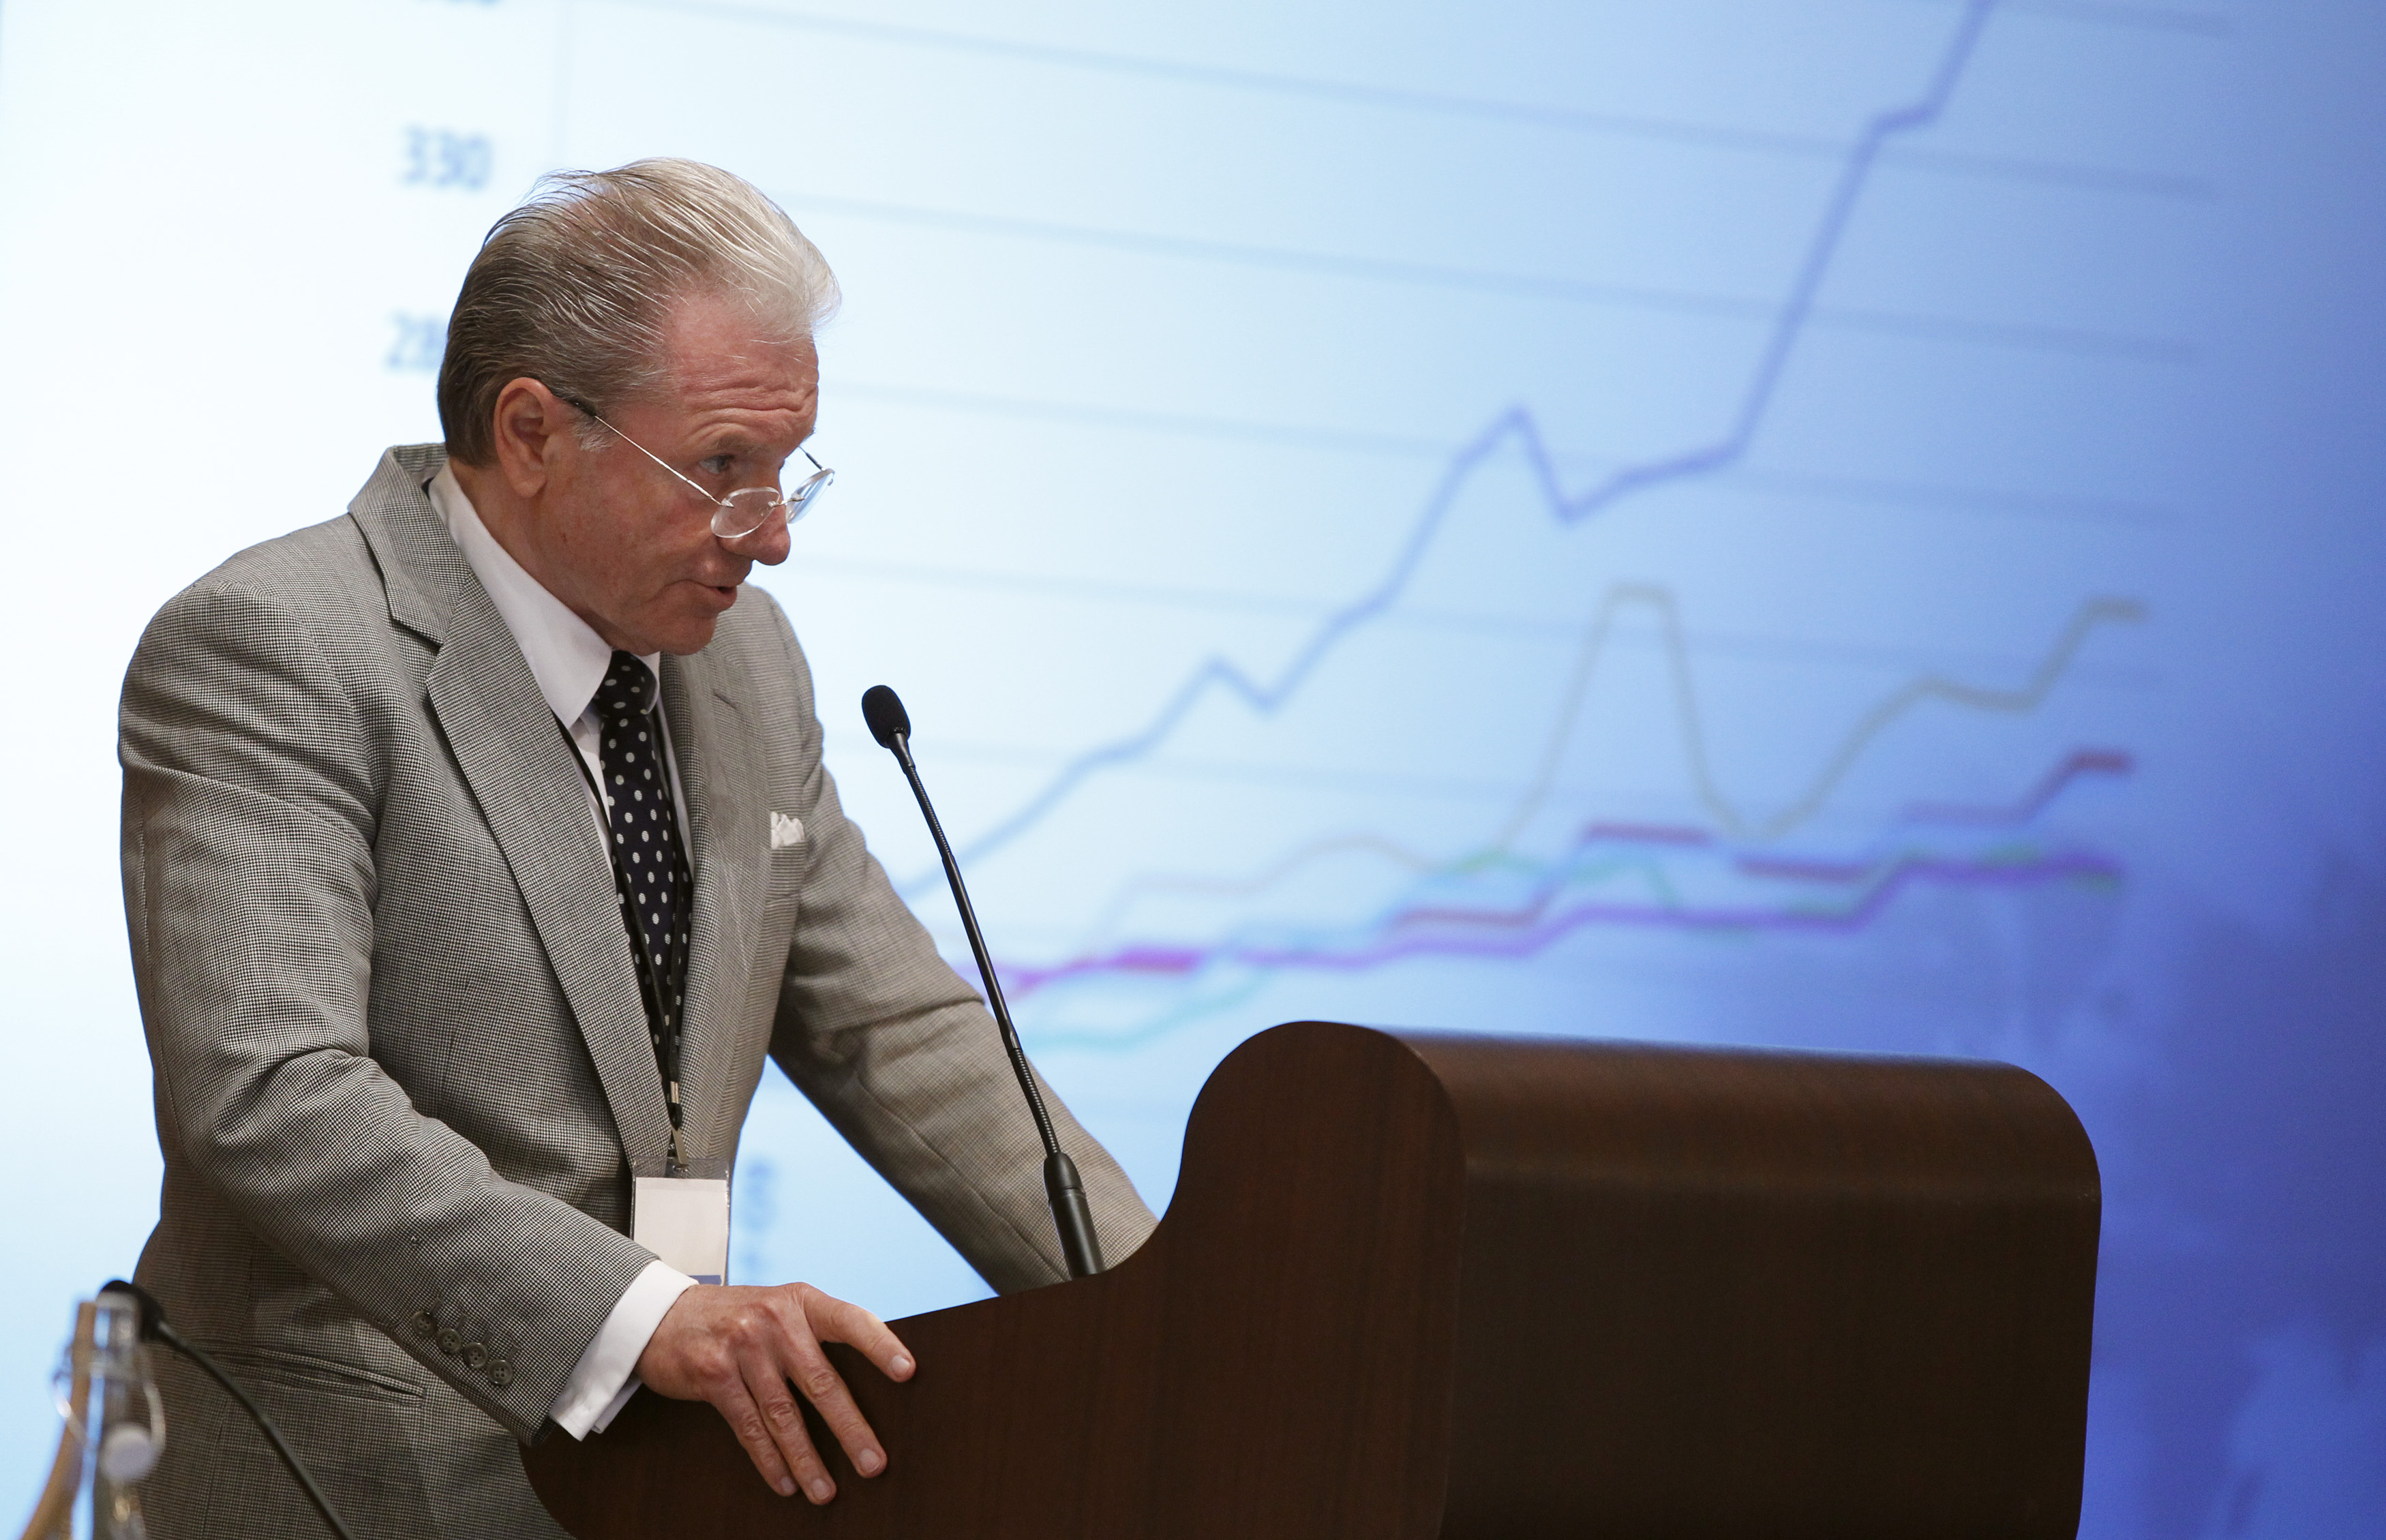 Interactive Brokers founder on why he owns crypto: People may 'lose faith in paper money'